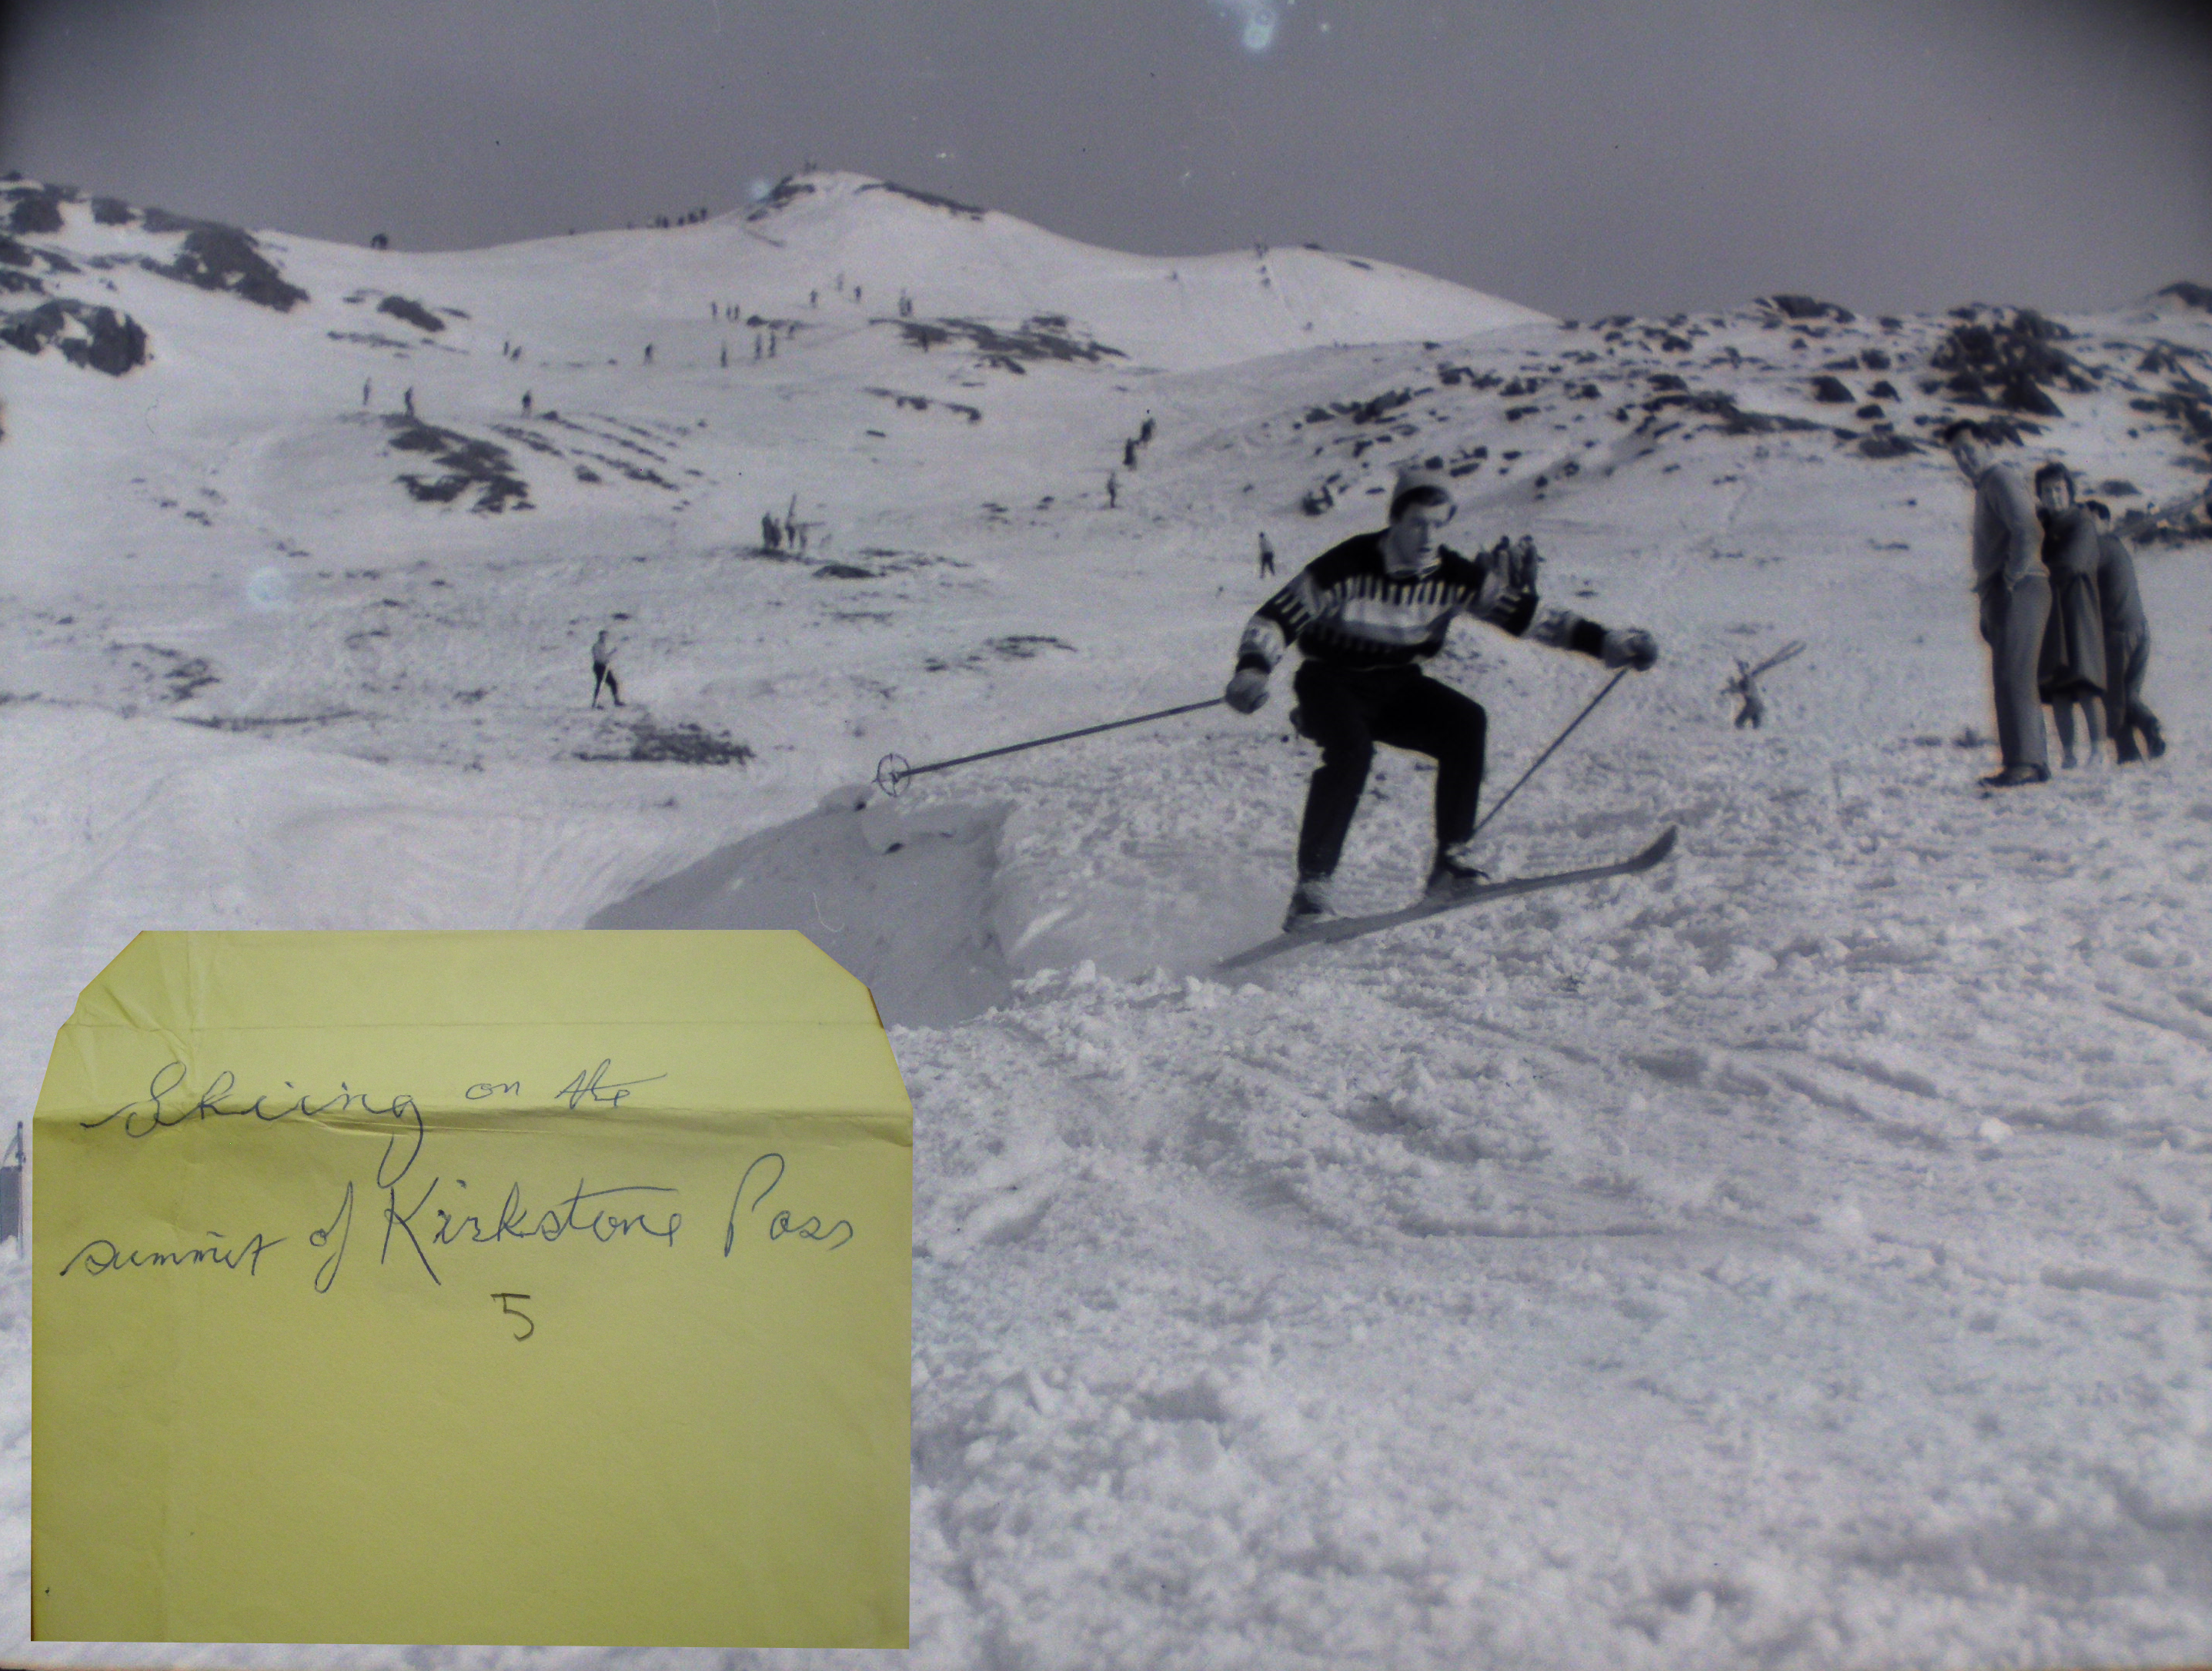 Skiiing on the summit of Kirkstone Pass. From glass slide negative at the County Record Office, Kendal. Taken circa 1960 by J.Hardman, Press Photographer ©  (inset: original envelope)